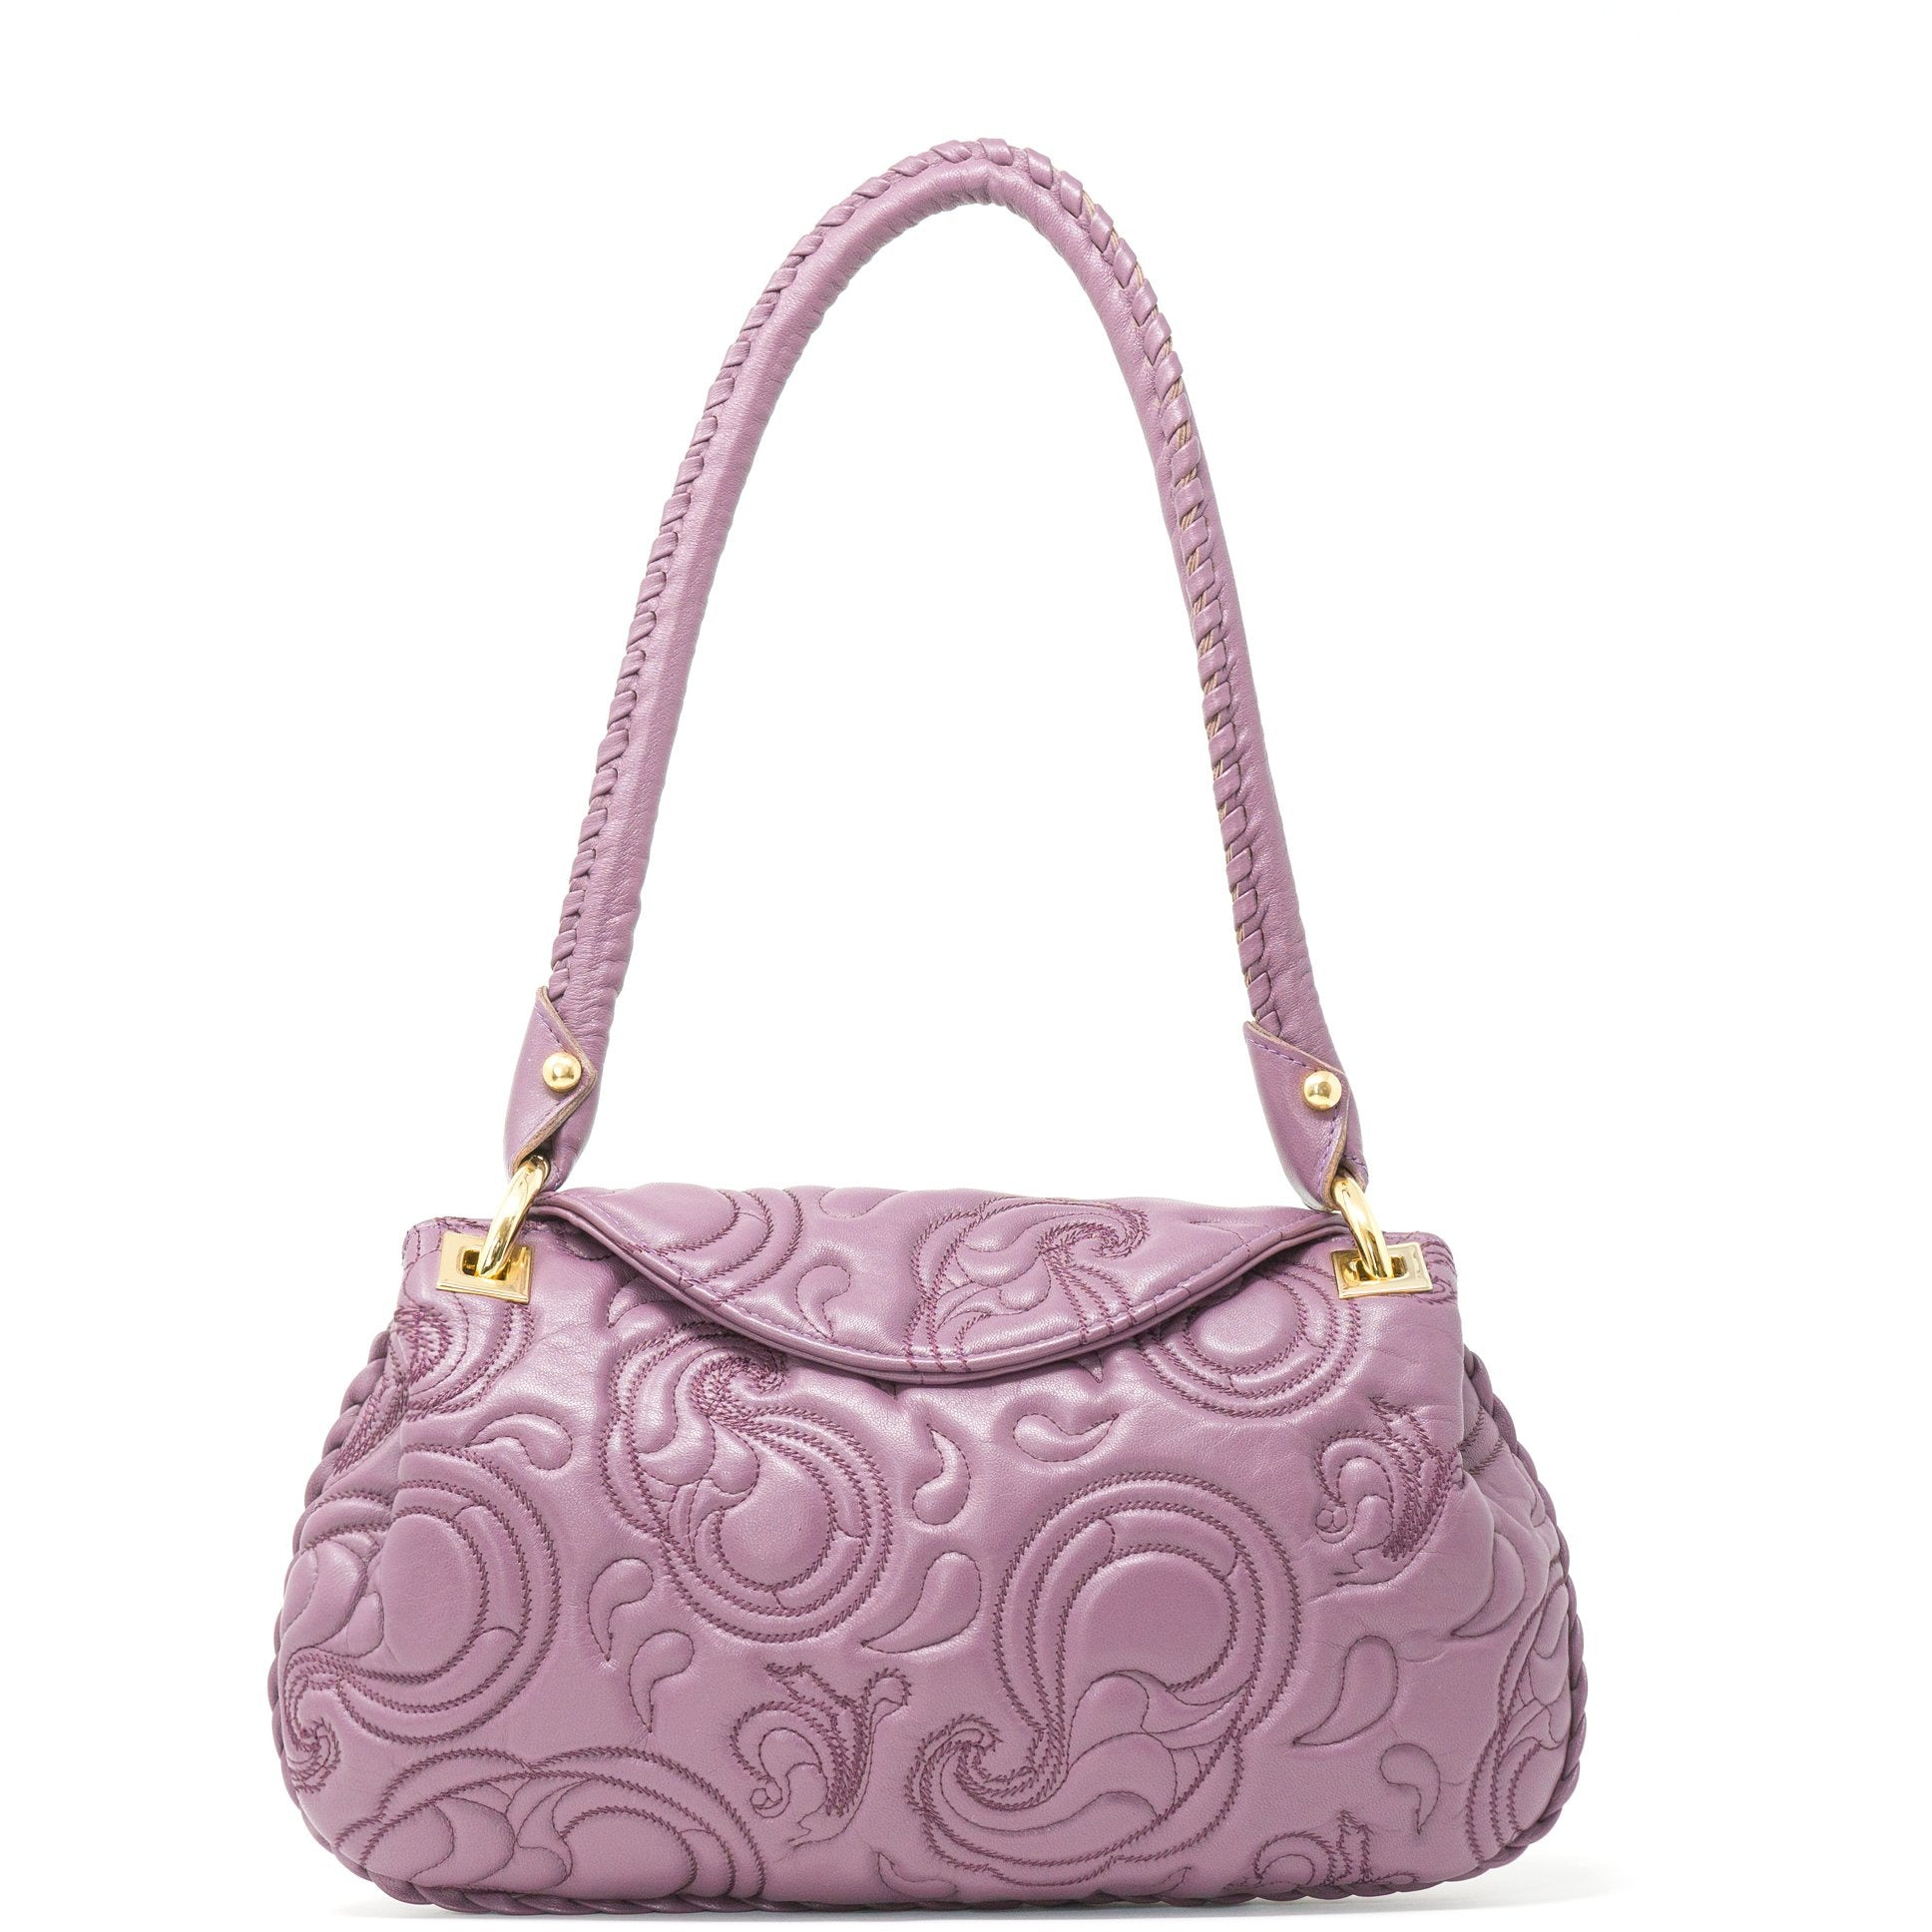 JT012 5023 30 Women Quilted Pasley Leather Shoulder Bag - Jennifer Tattanelli